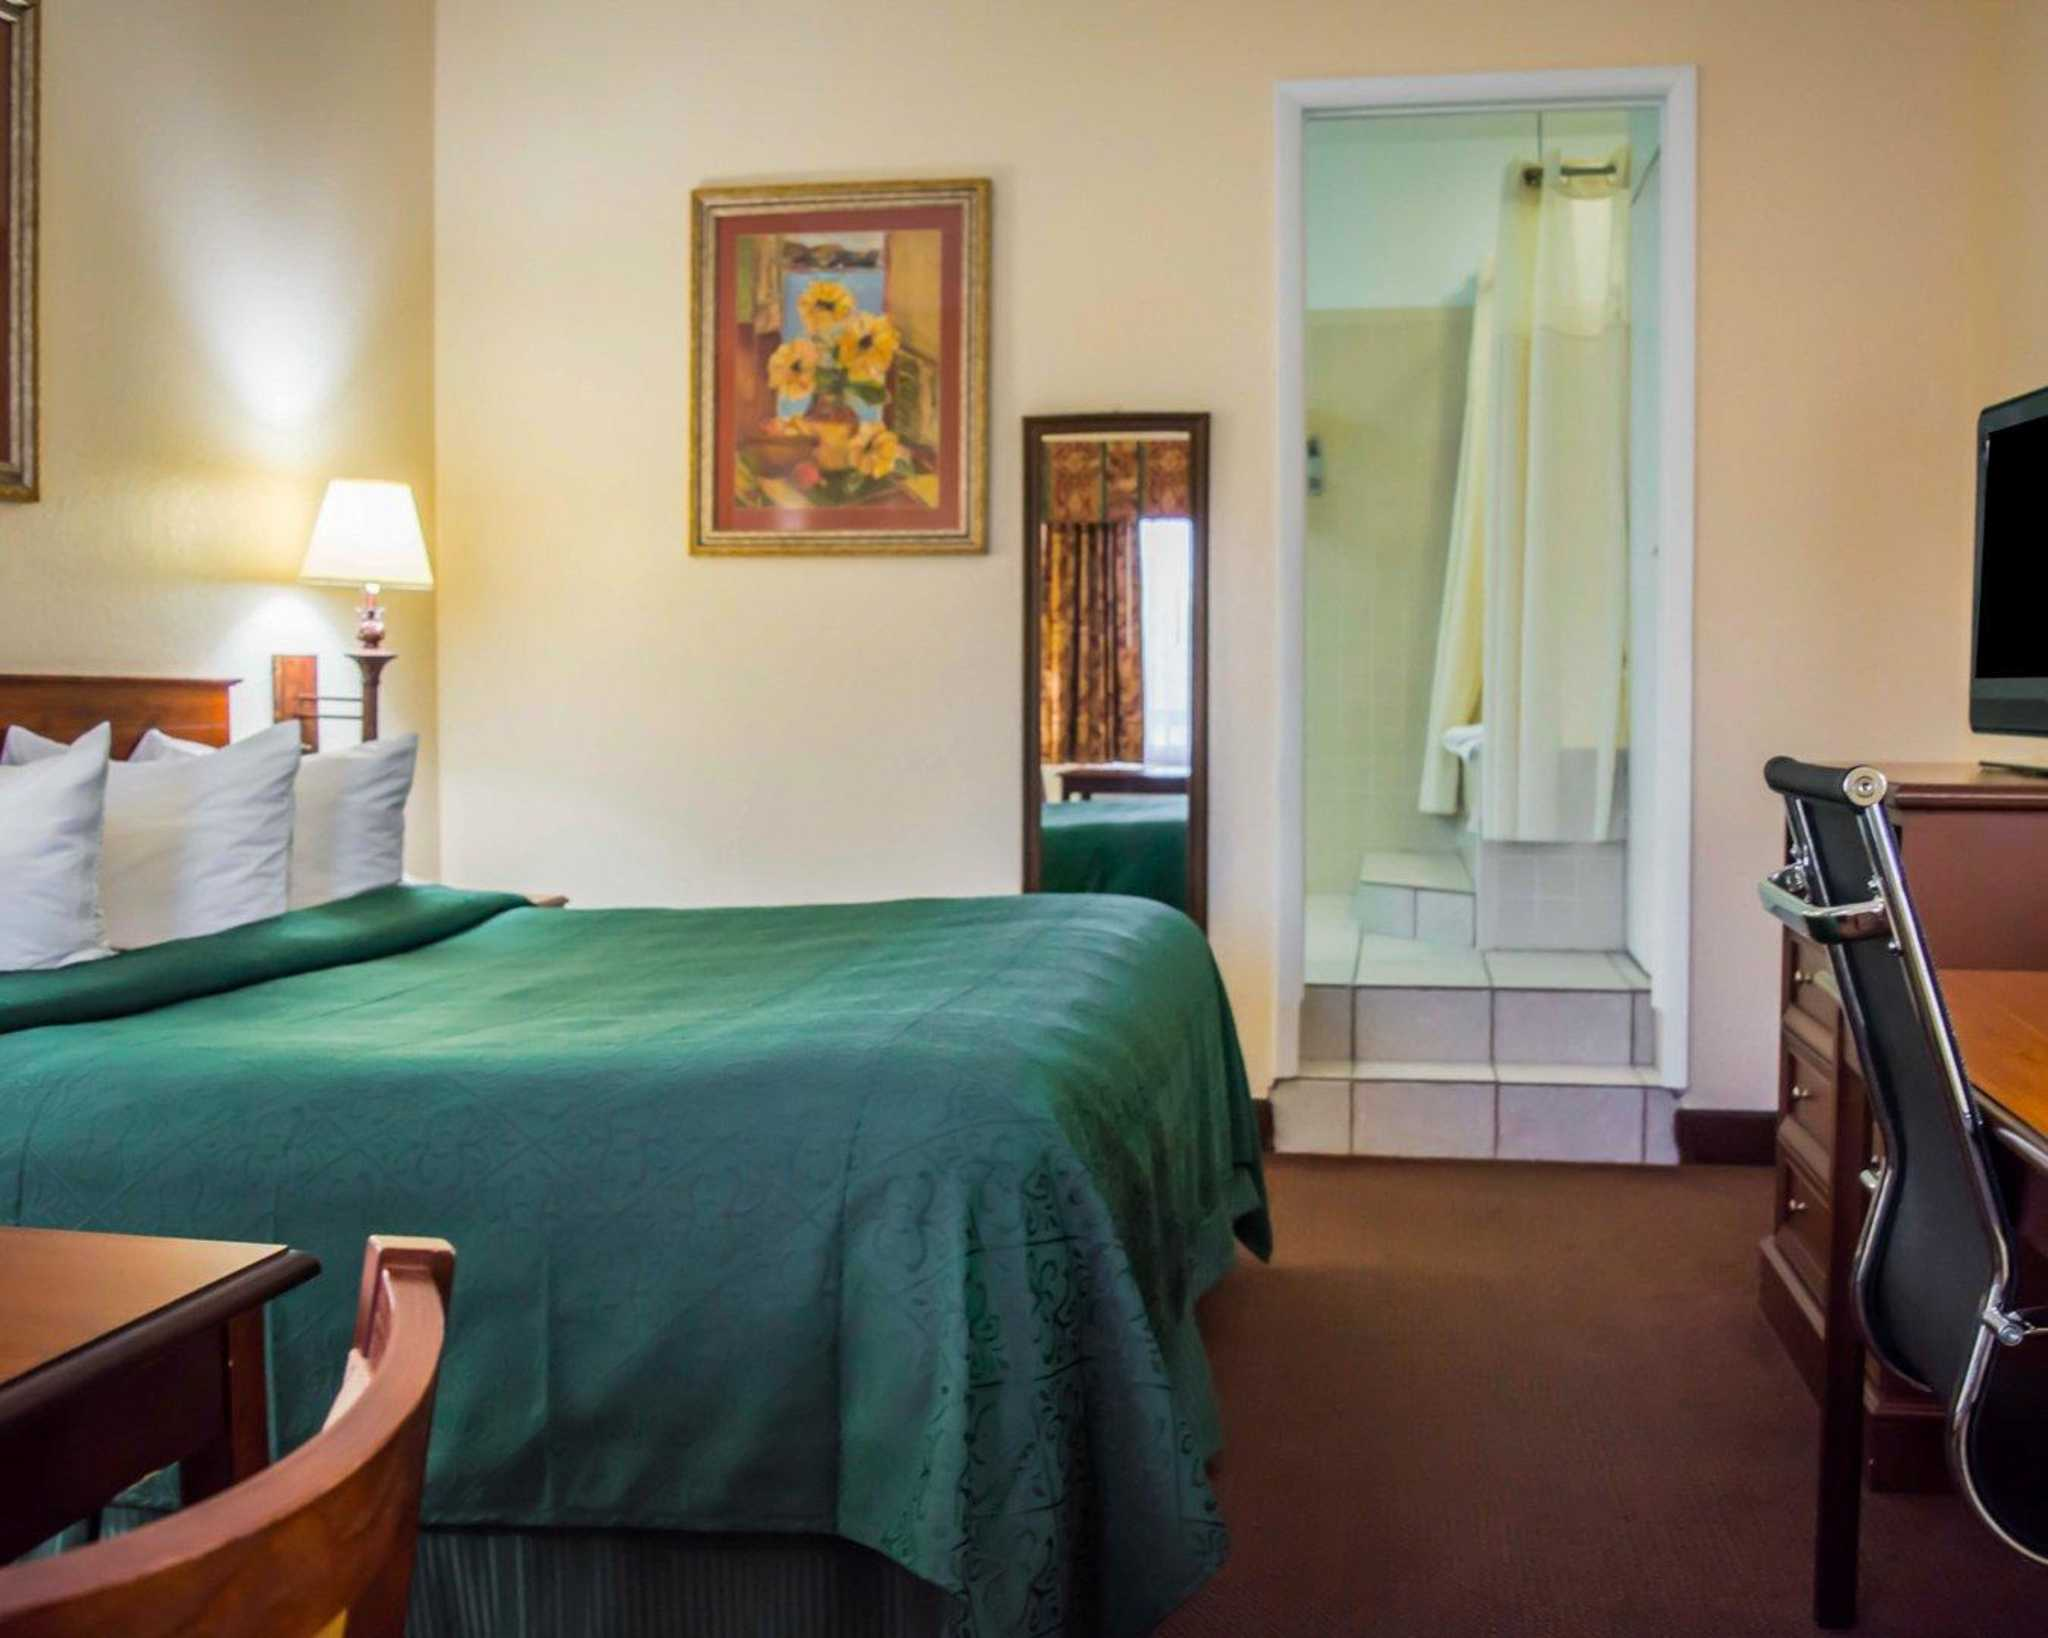 Quality Inn Coupons Near Me In Weeki Wachee 8coupons